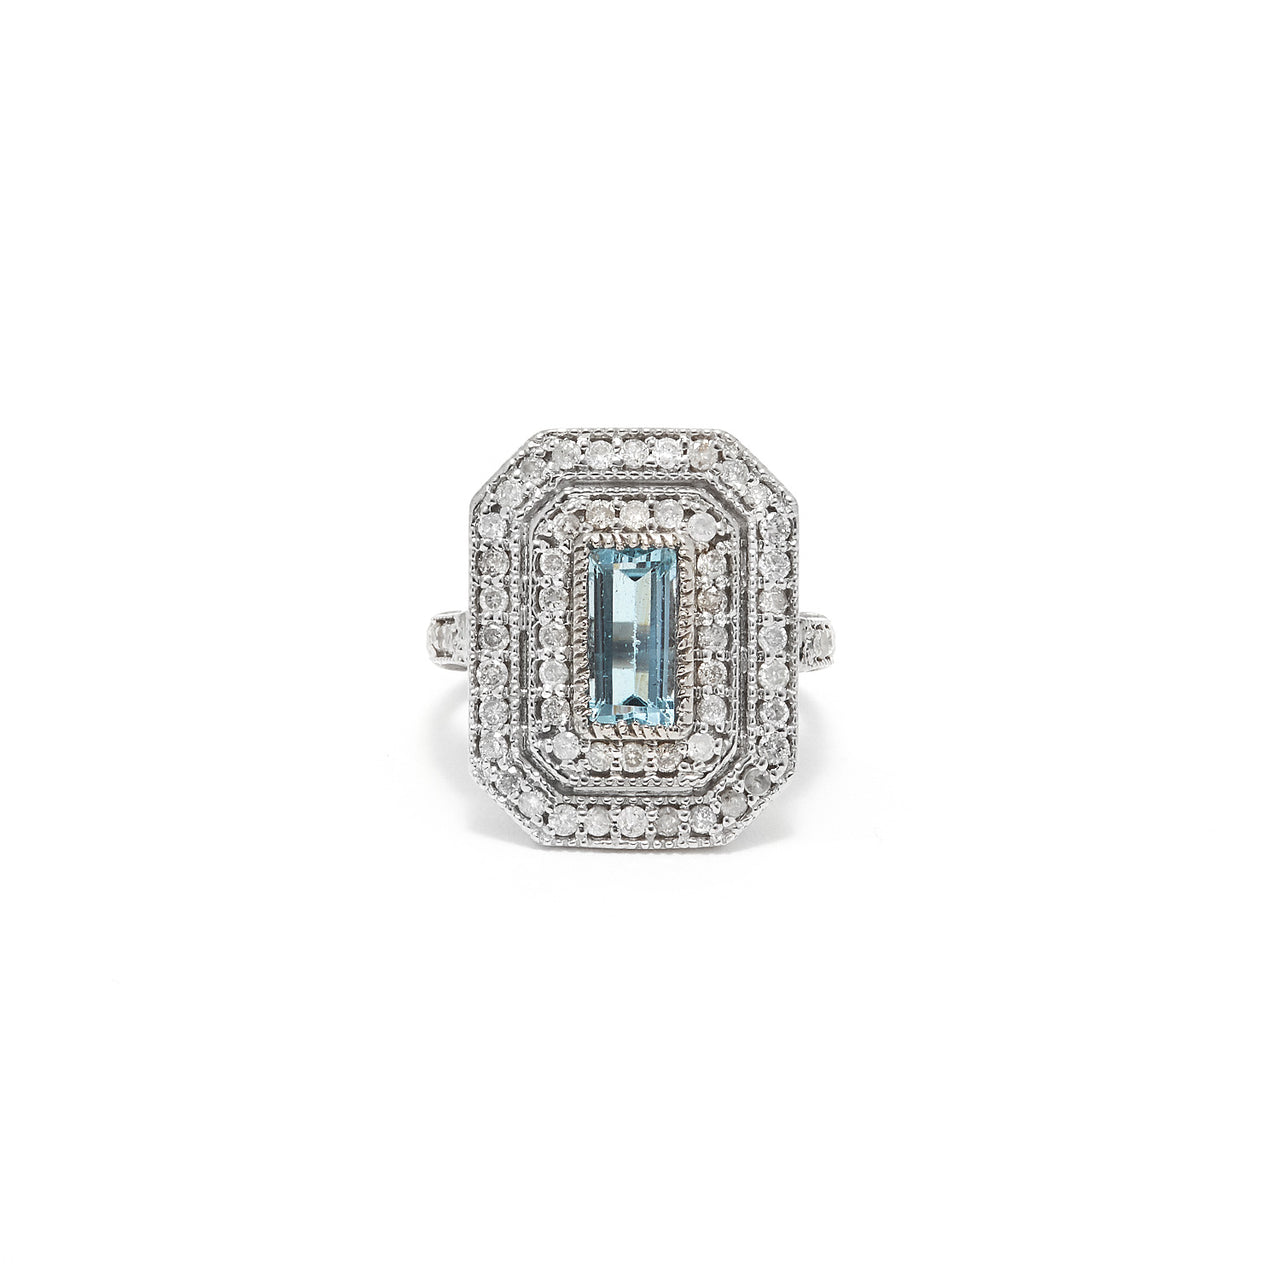 Aquamarine Art Deco Diamond Cocktail Ring